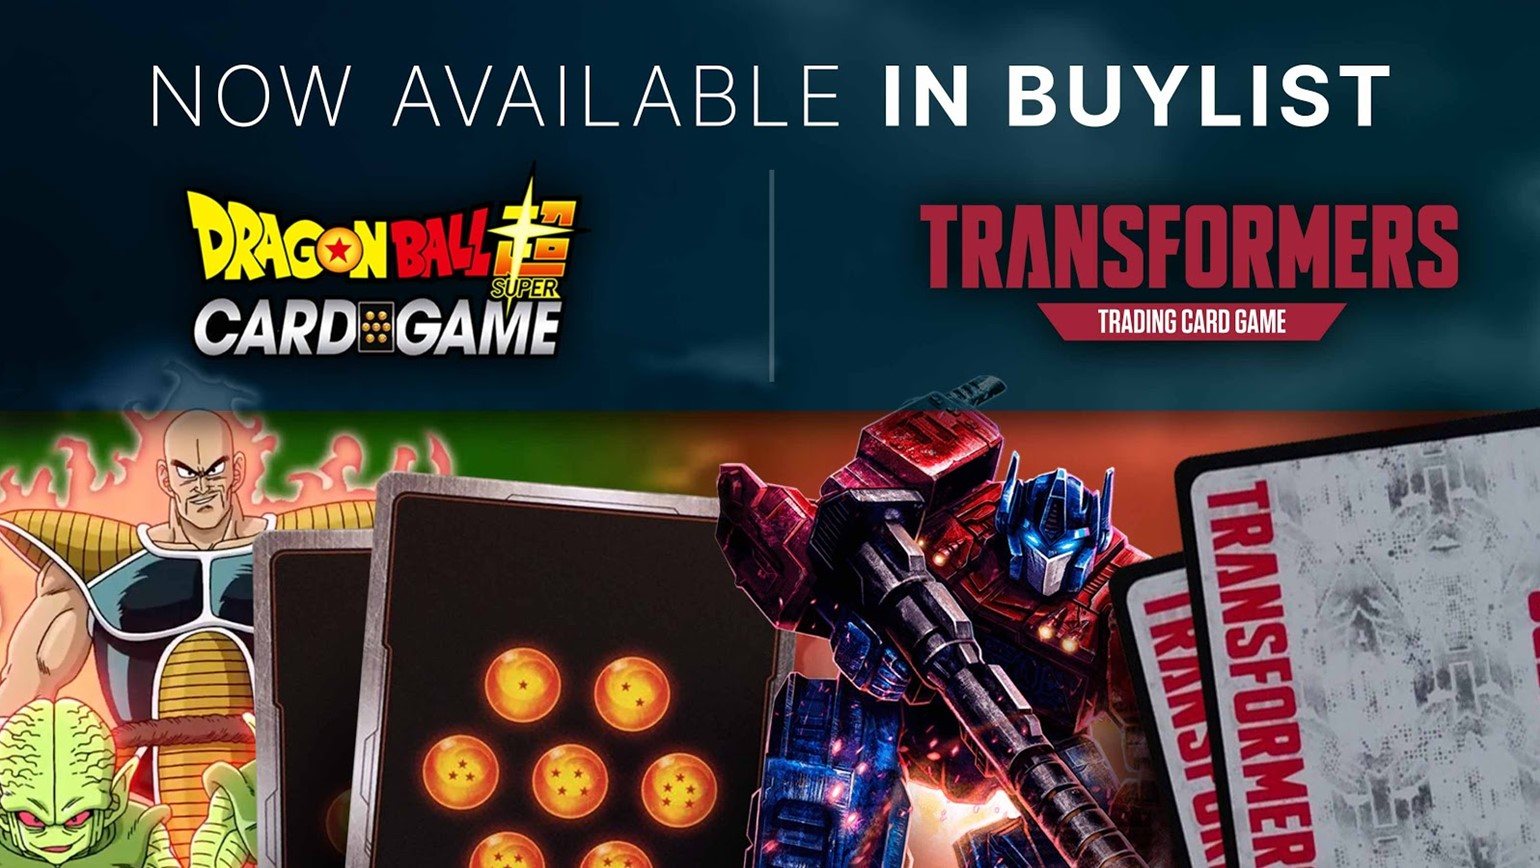 Transformers and Dragon Ball Super Join the Pro Buylist